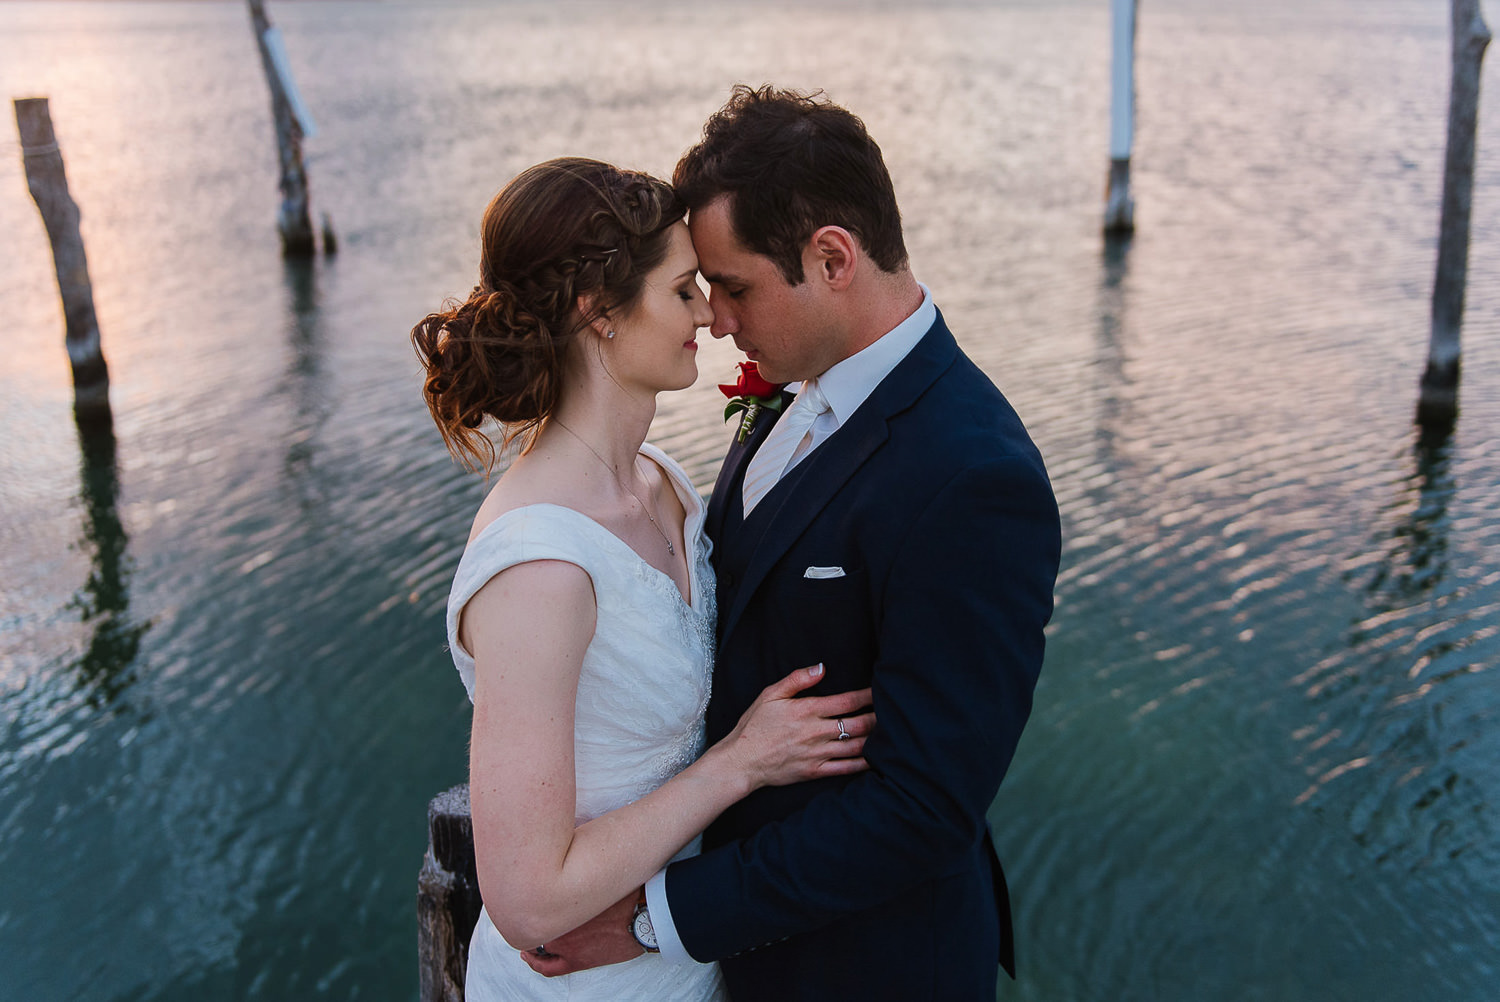 Bride and groom holding each other with a lagoon in the background